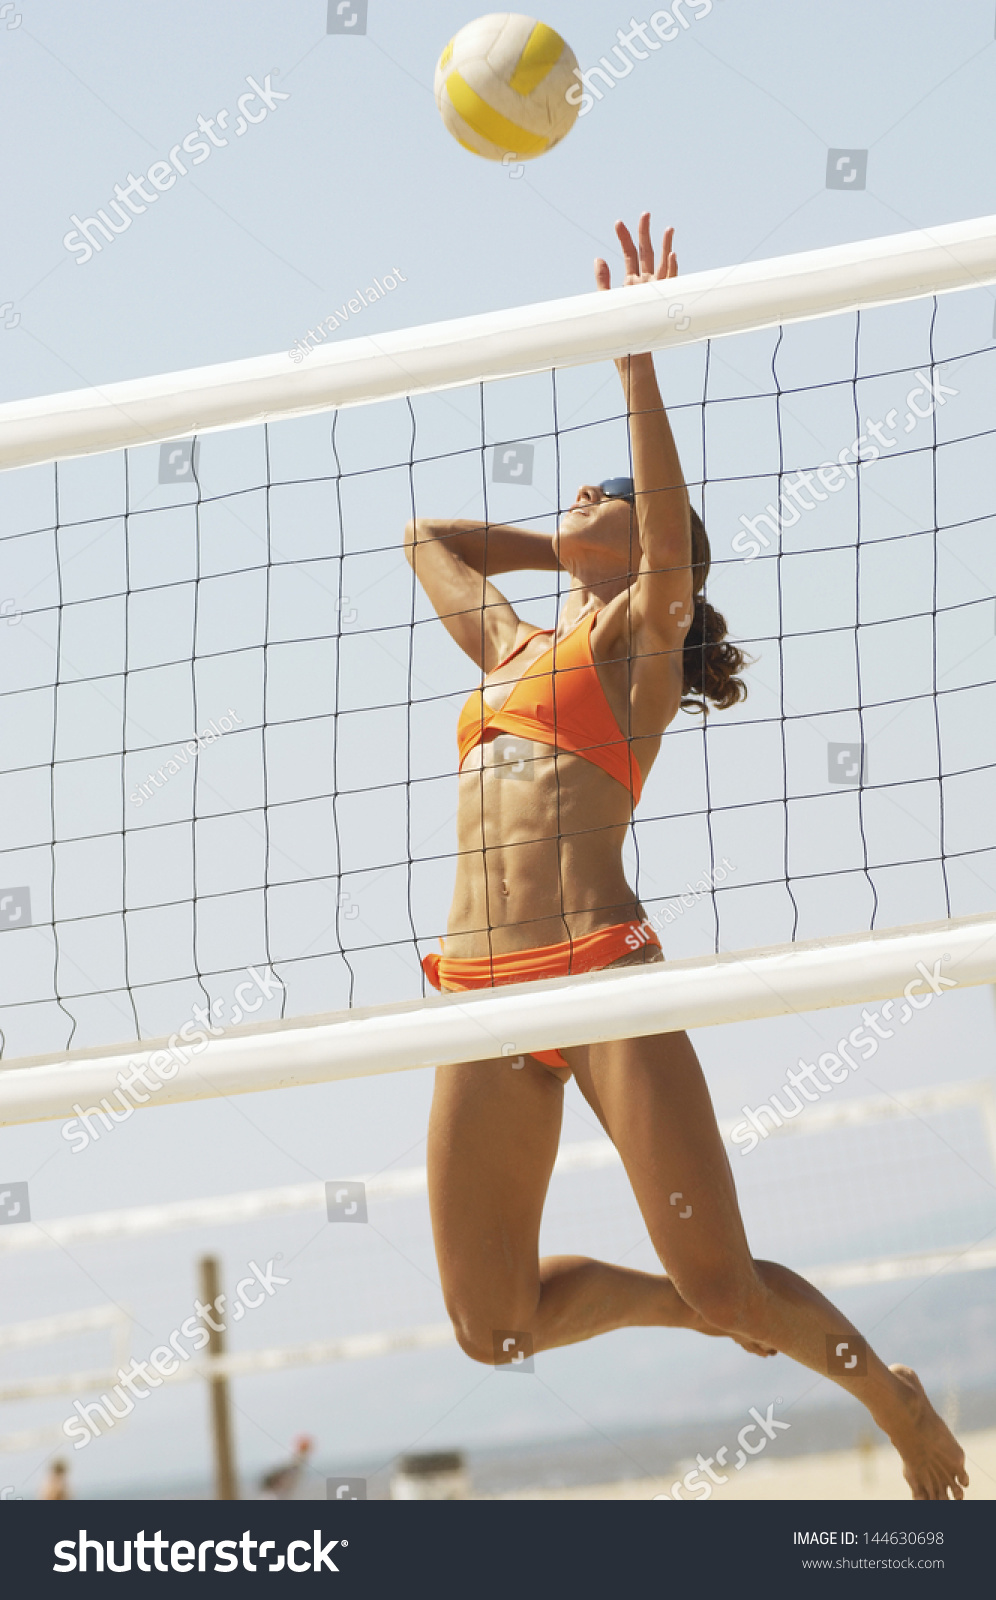 female beach volleyball player jumping spike stock photo